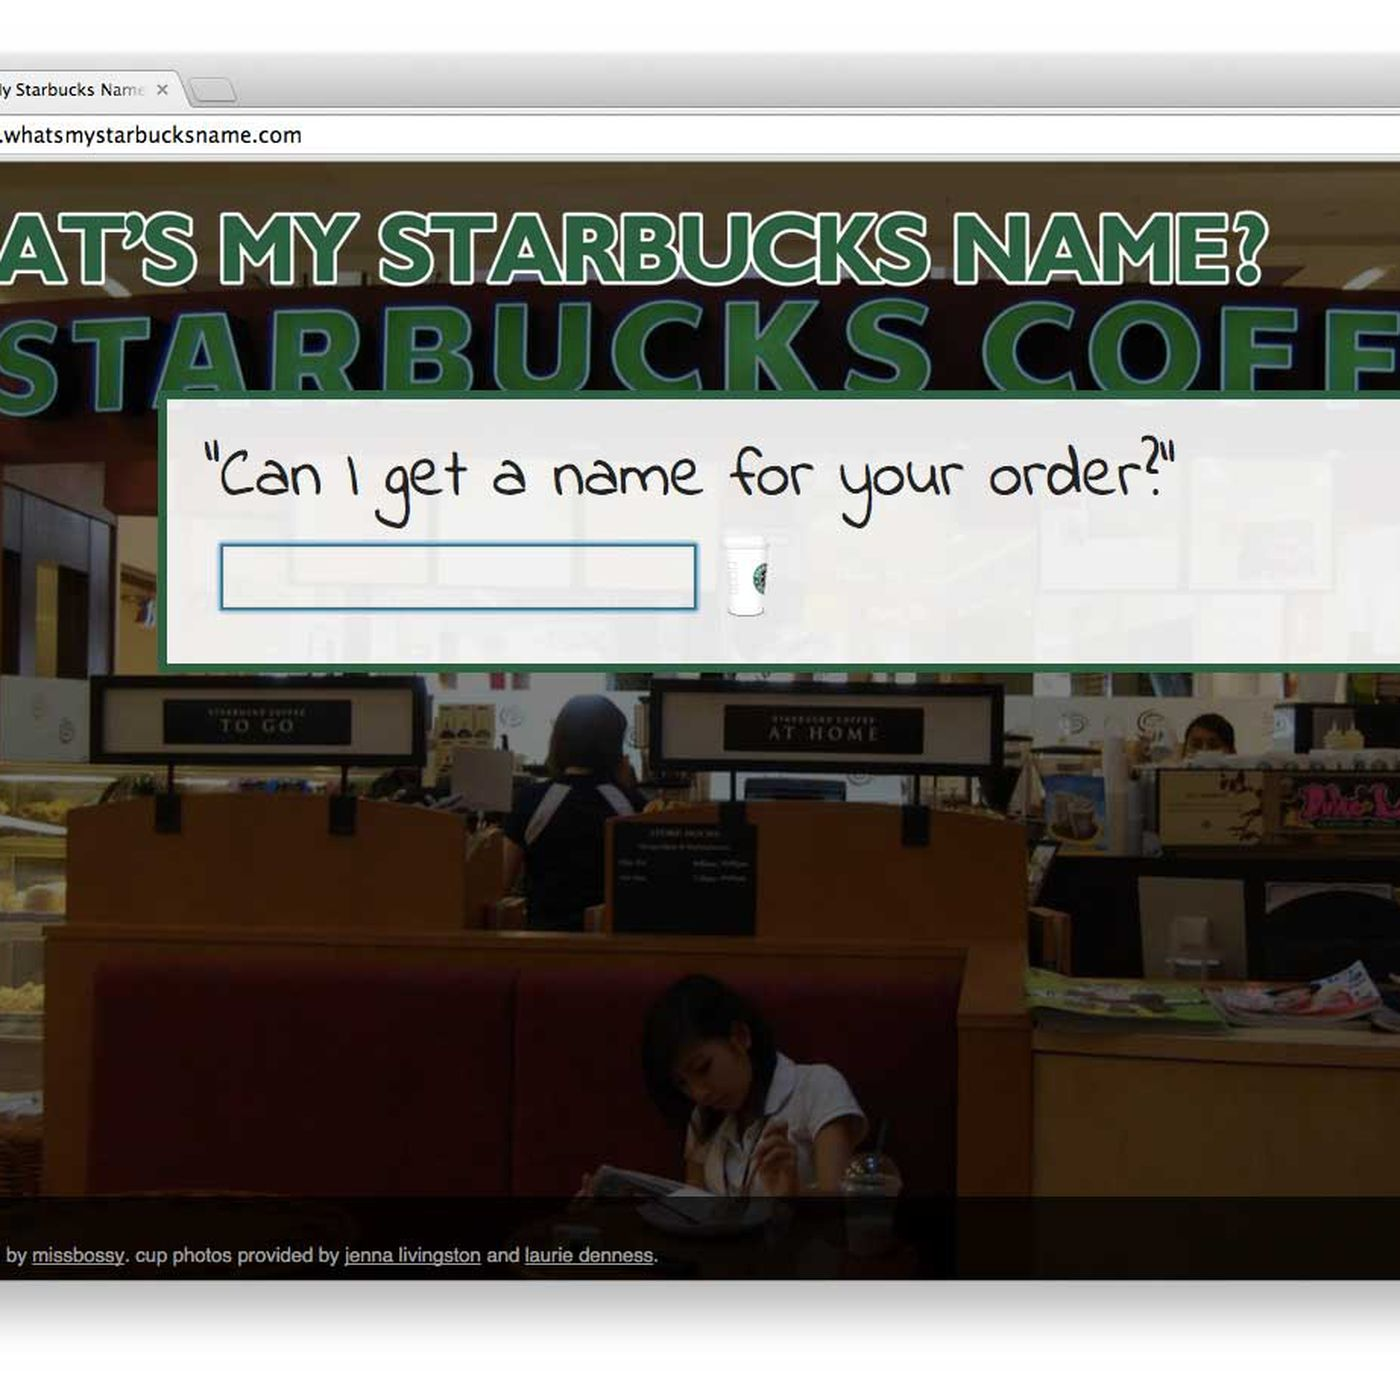 Have a Starbucks Experience at Home With this Botched Name